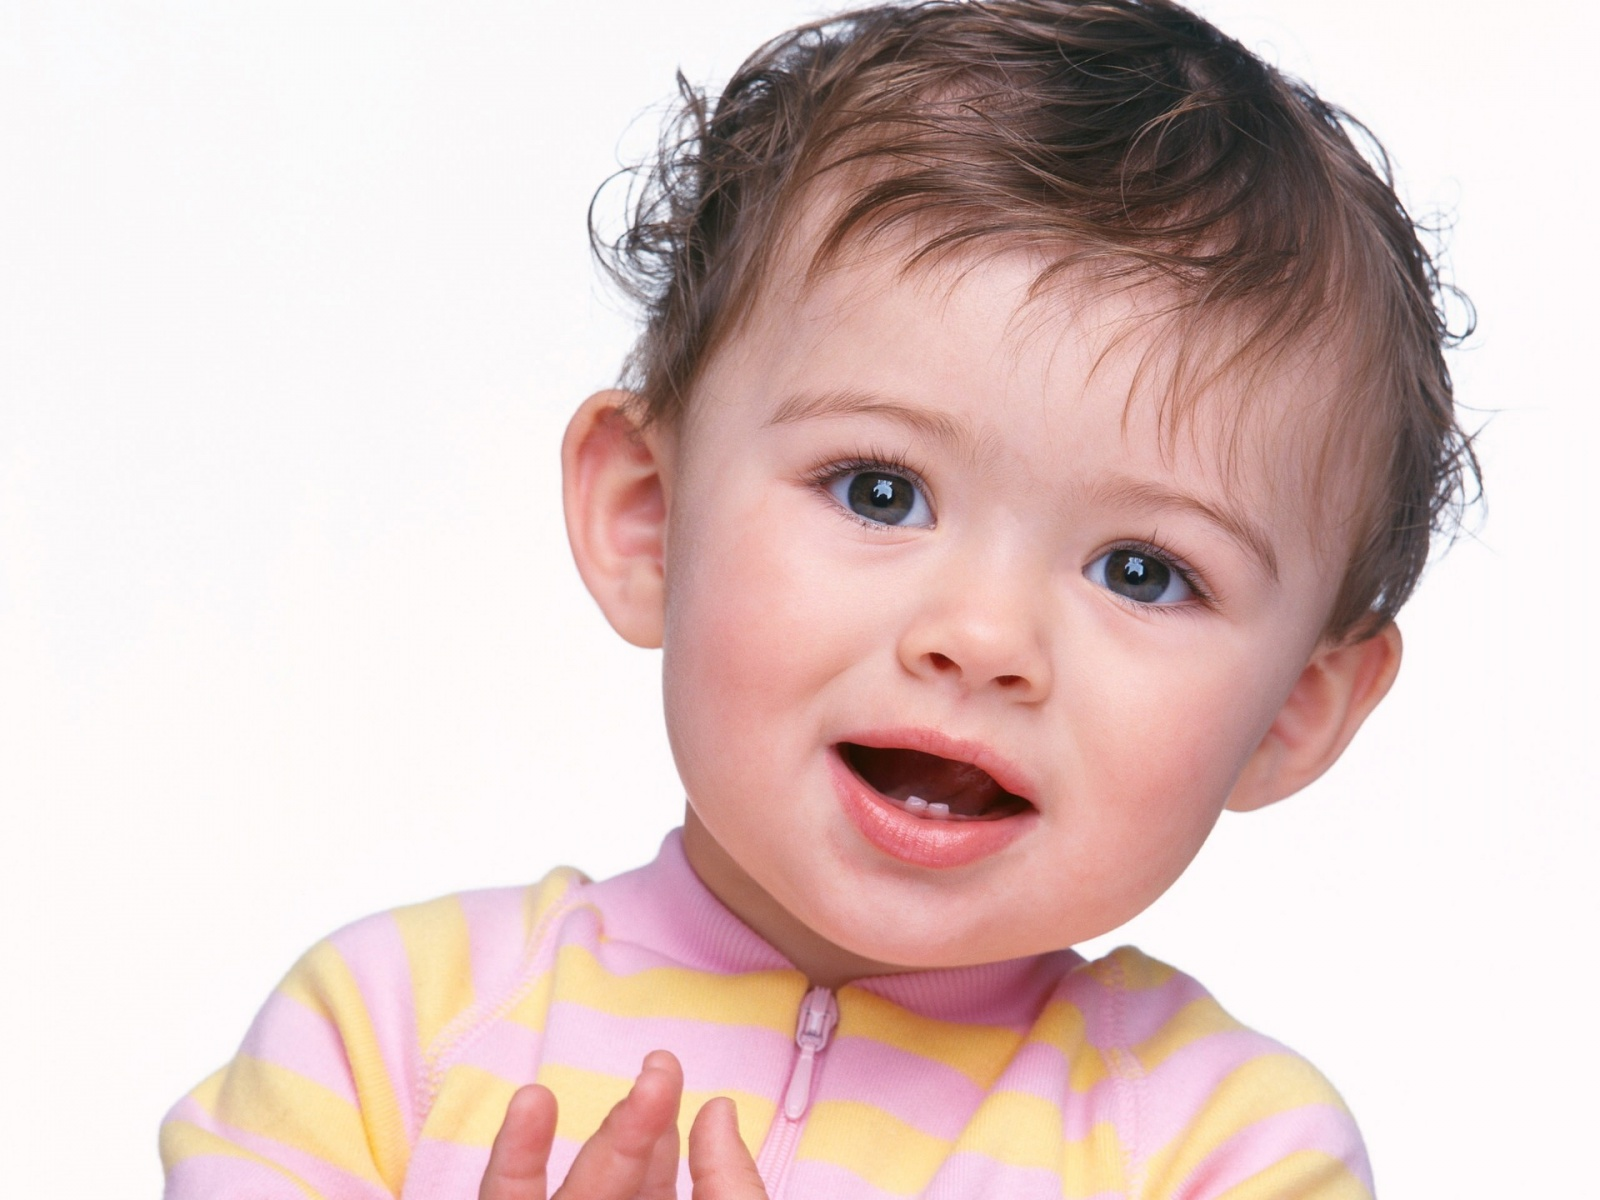 Cute Baby Wallpapers Android Apps on Google Play HD Wallpapers